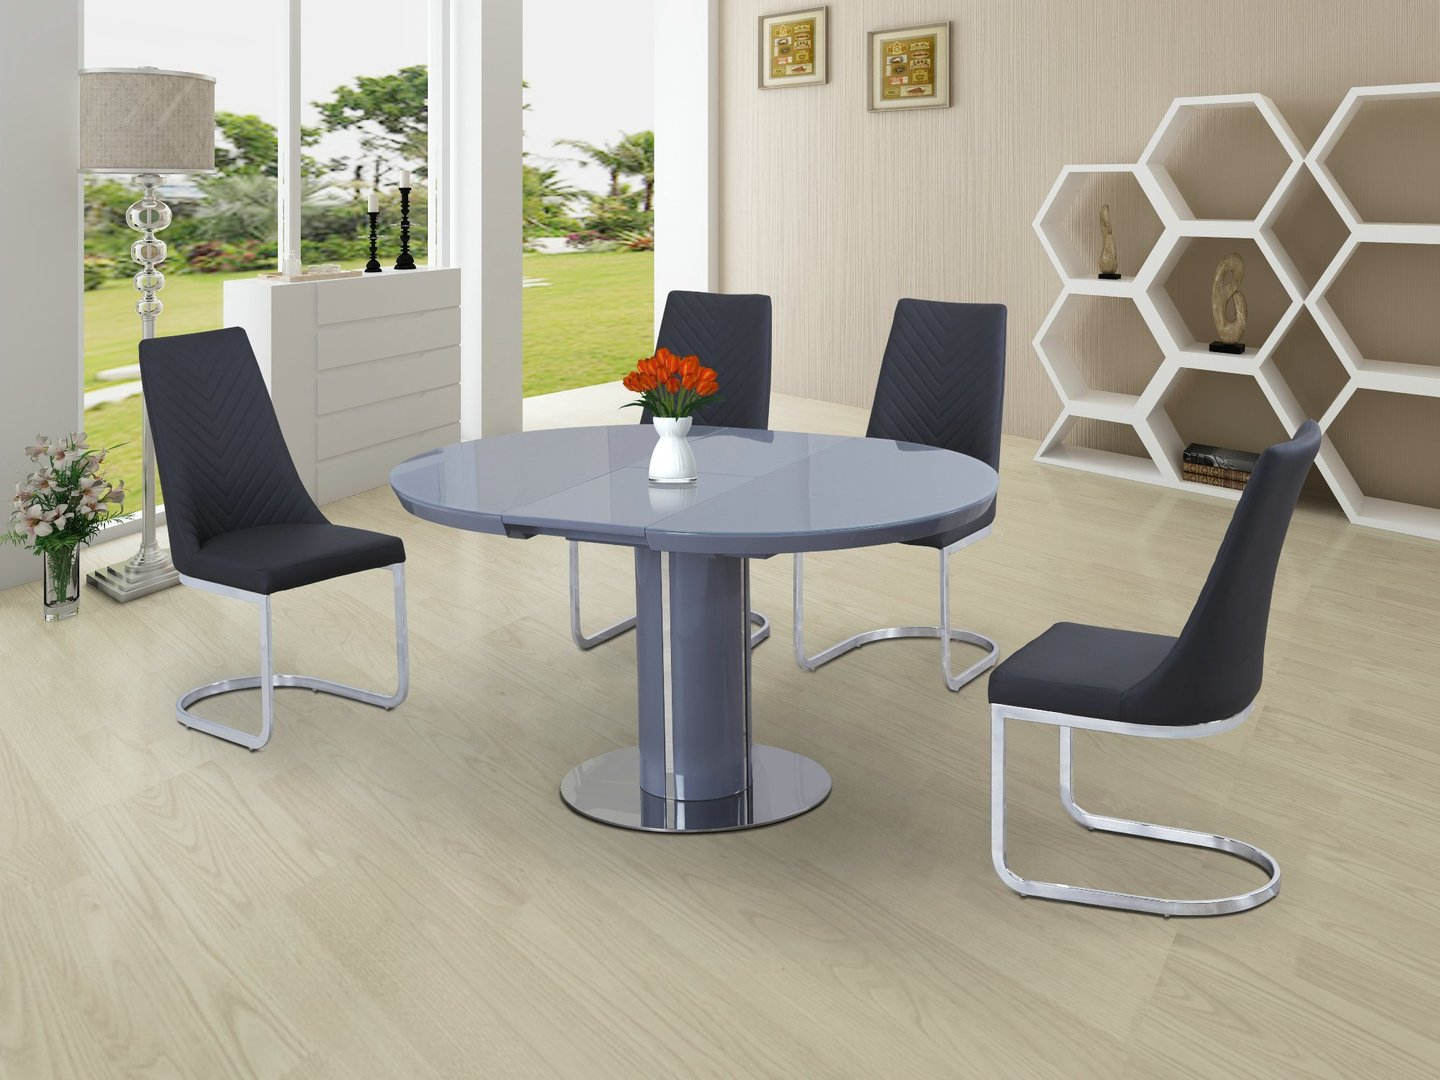 Round grey glass high gloss dining table and 6 chairs set for 6 chair round dining table set